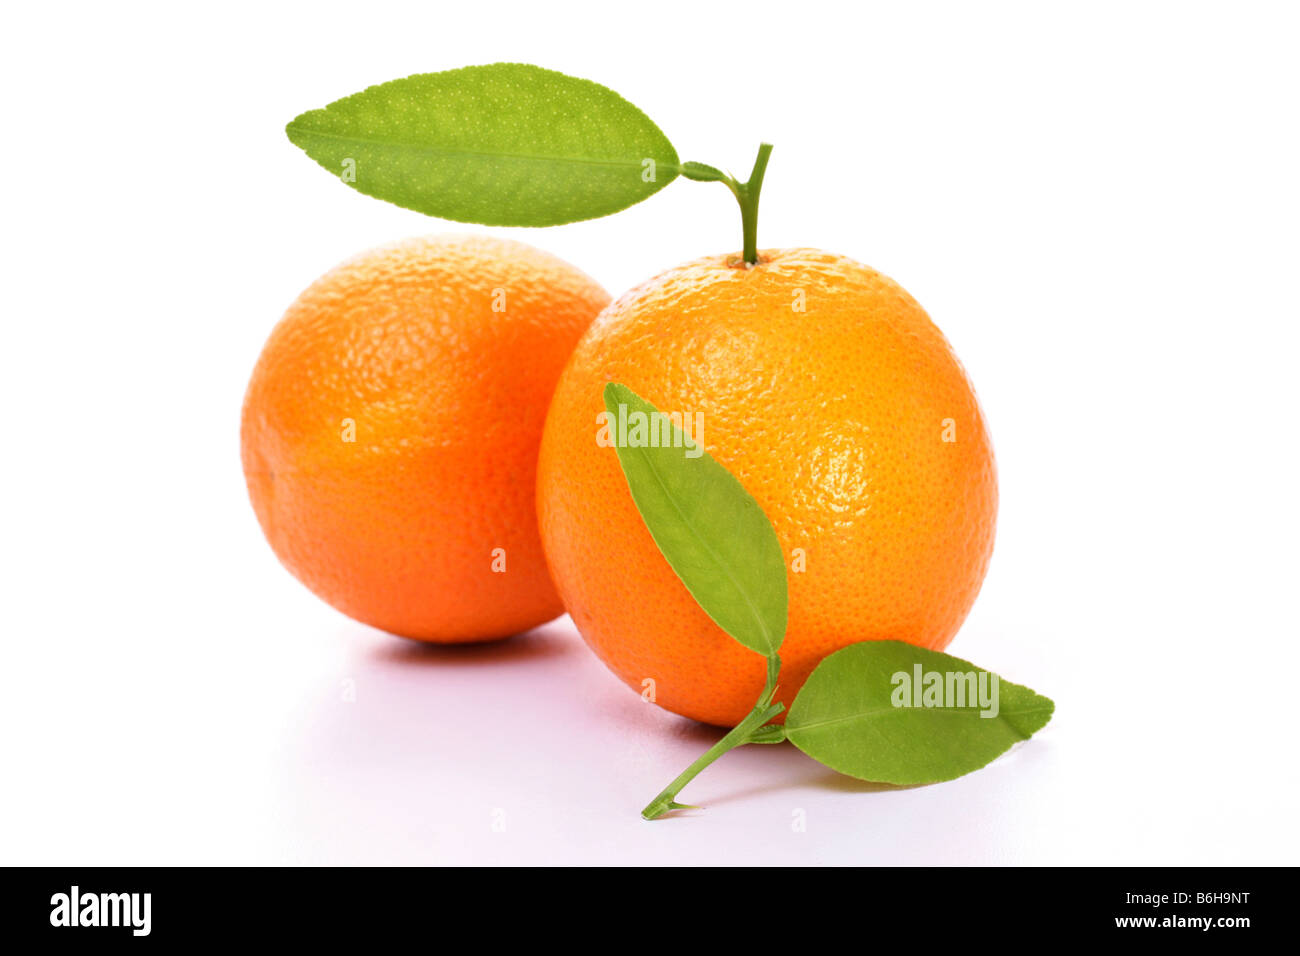 Juicy ornage fruit with leaves - Stock Image